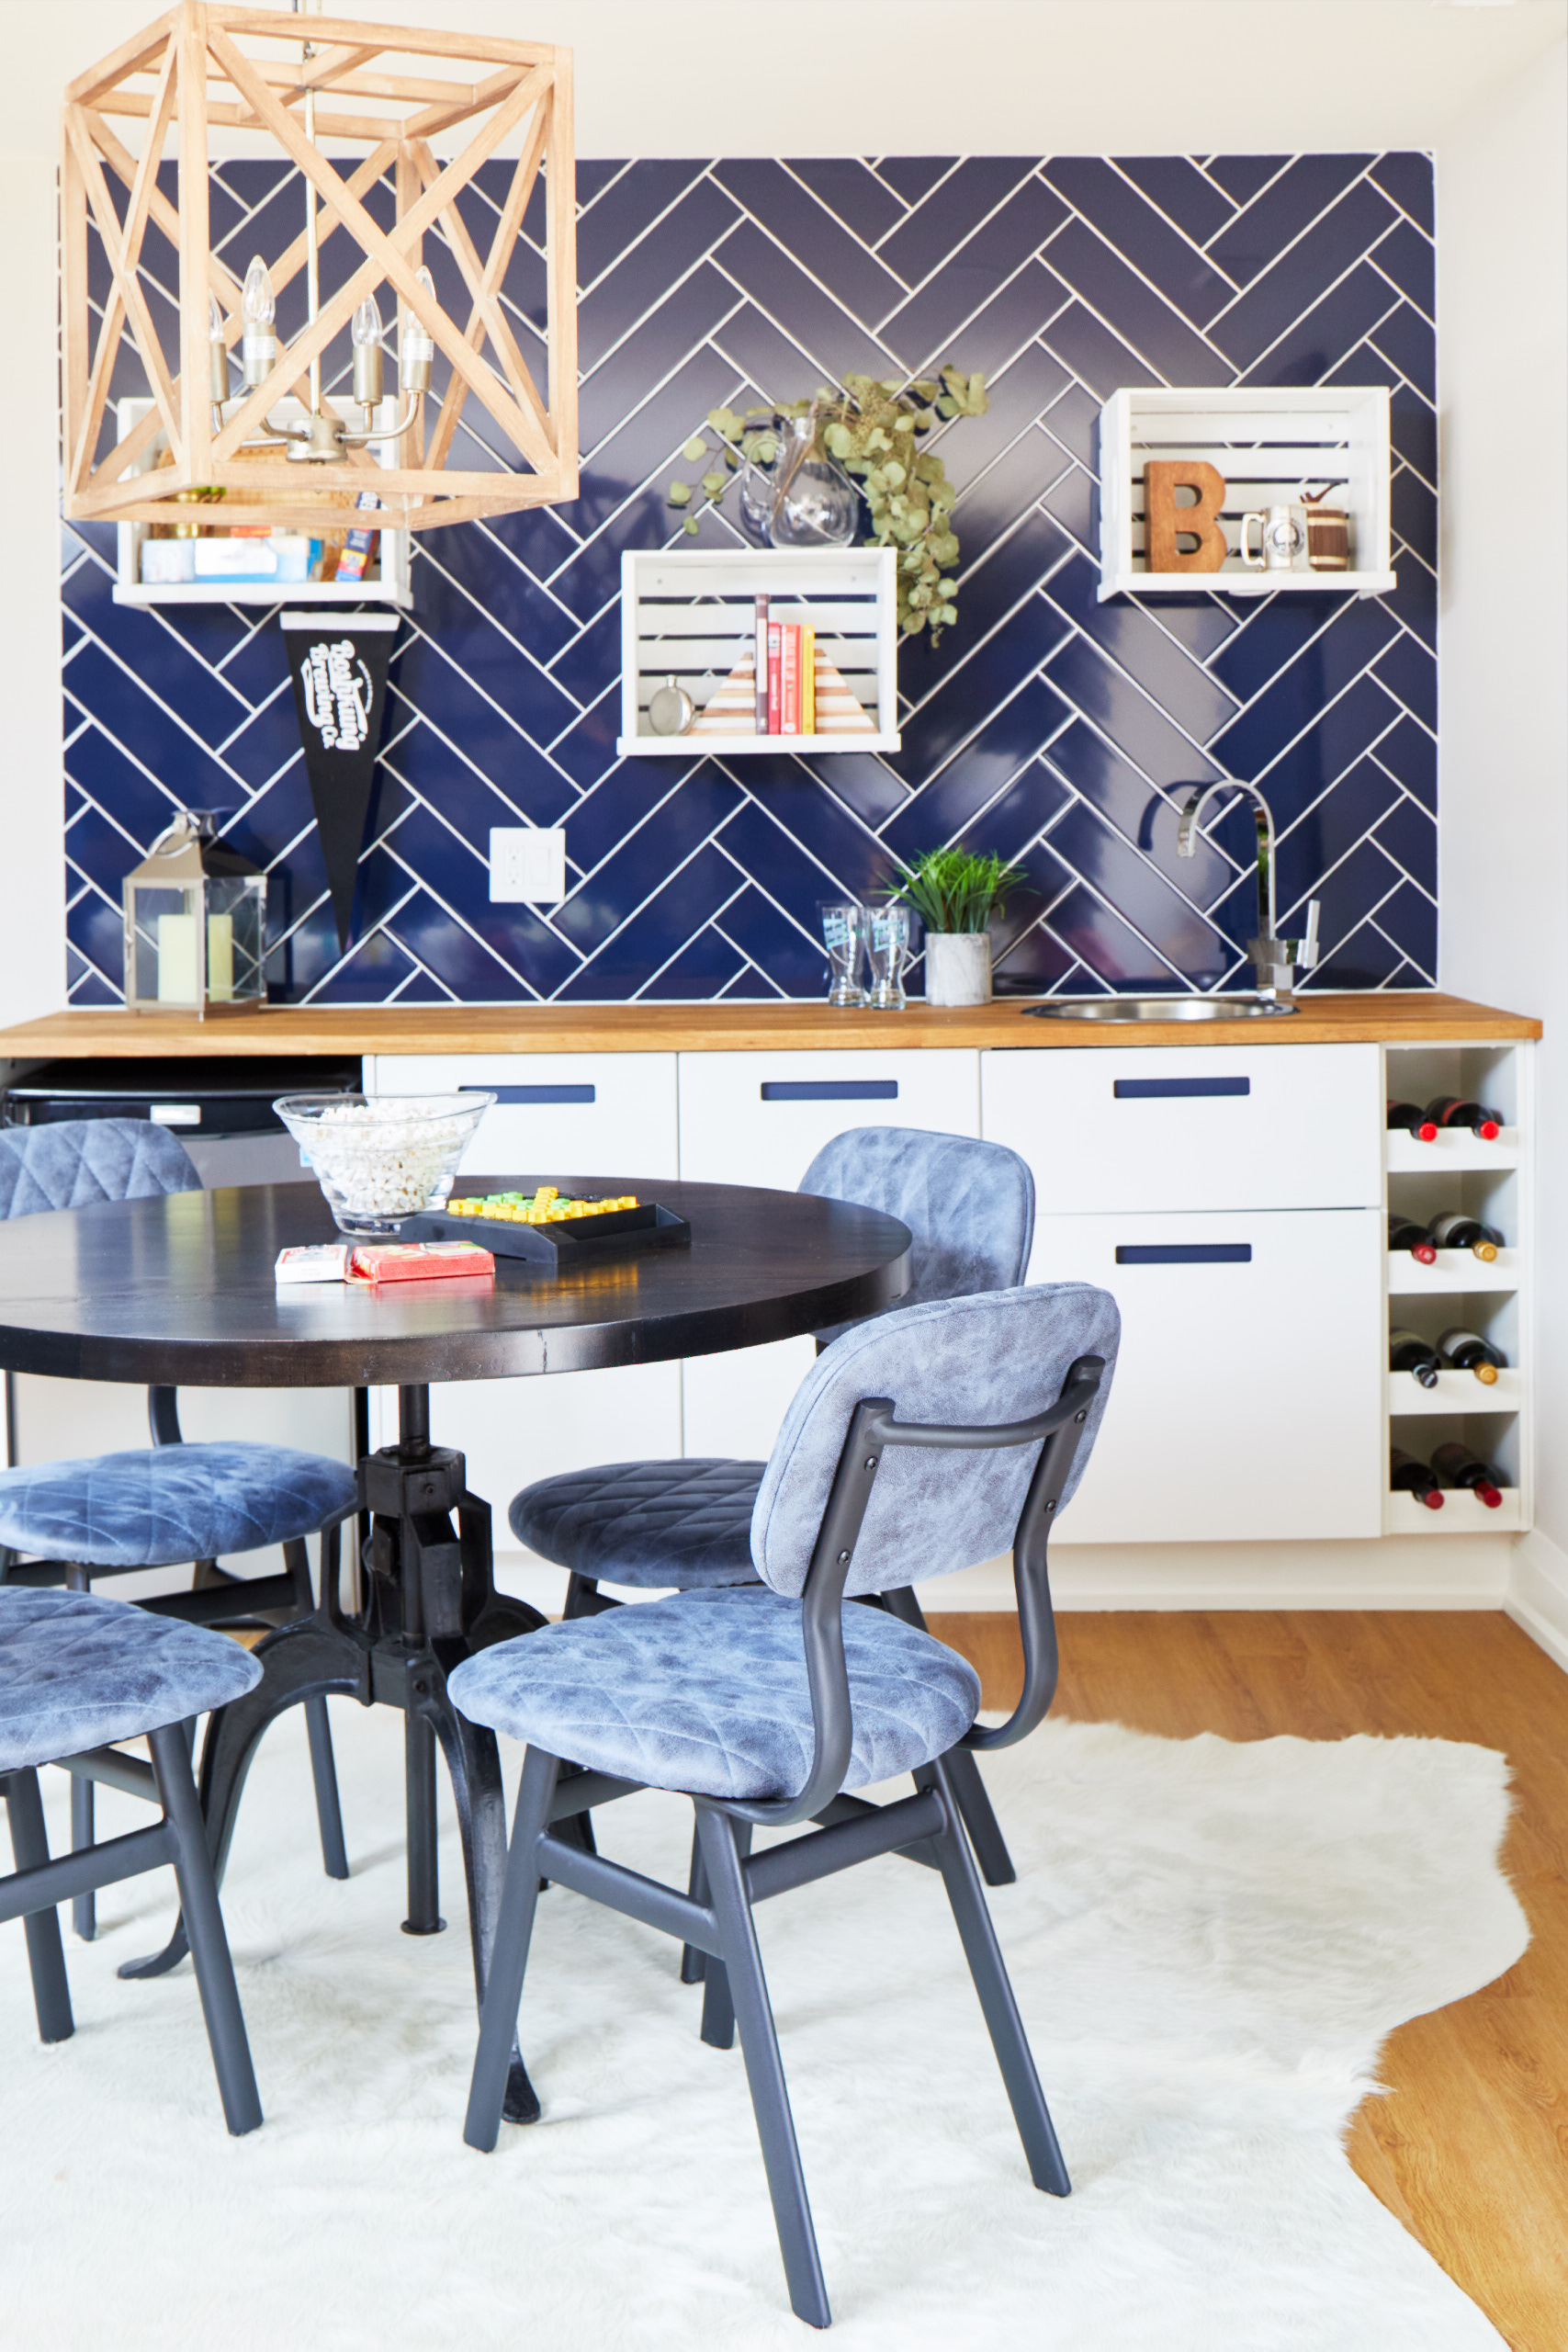 Custom Table & Store Bought Chairs